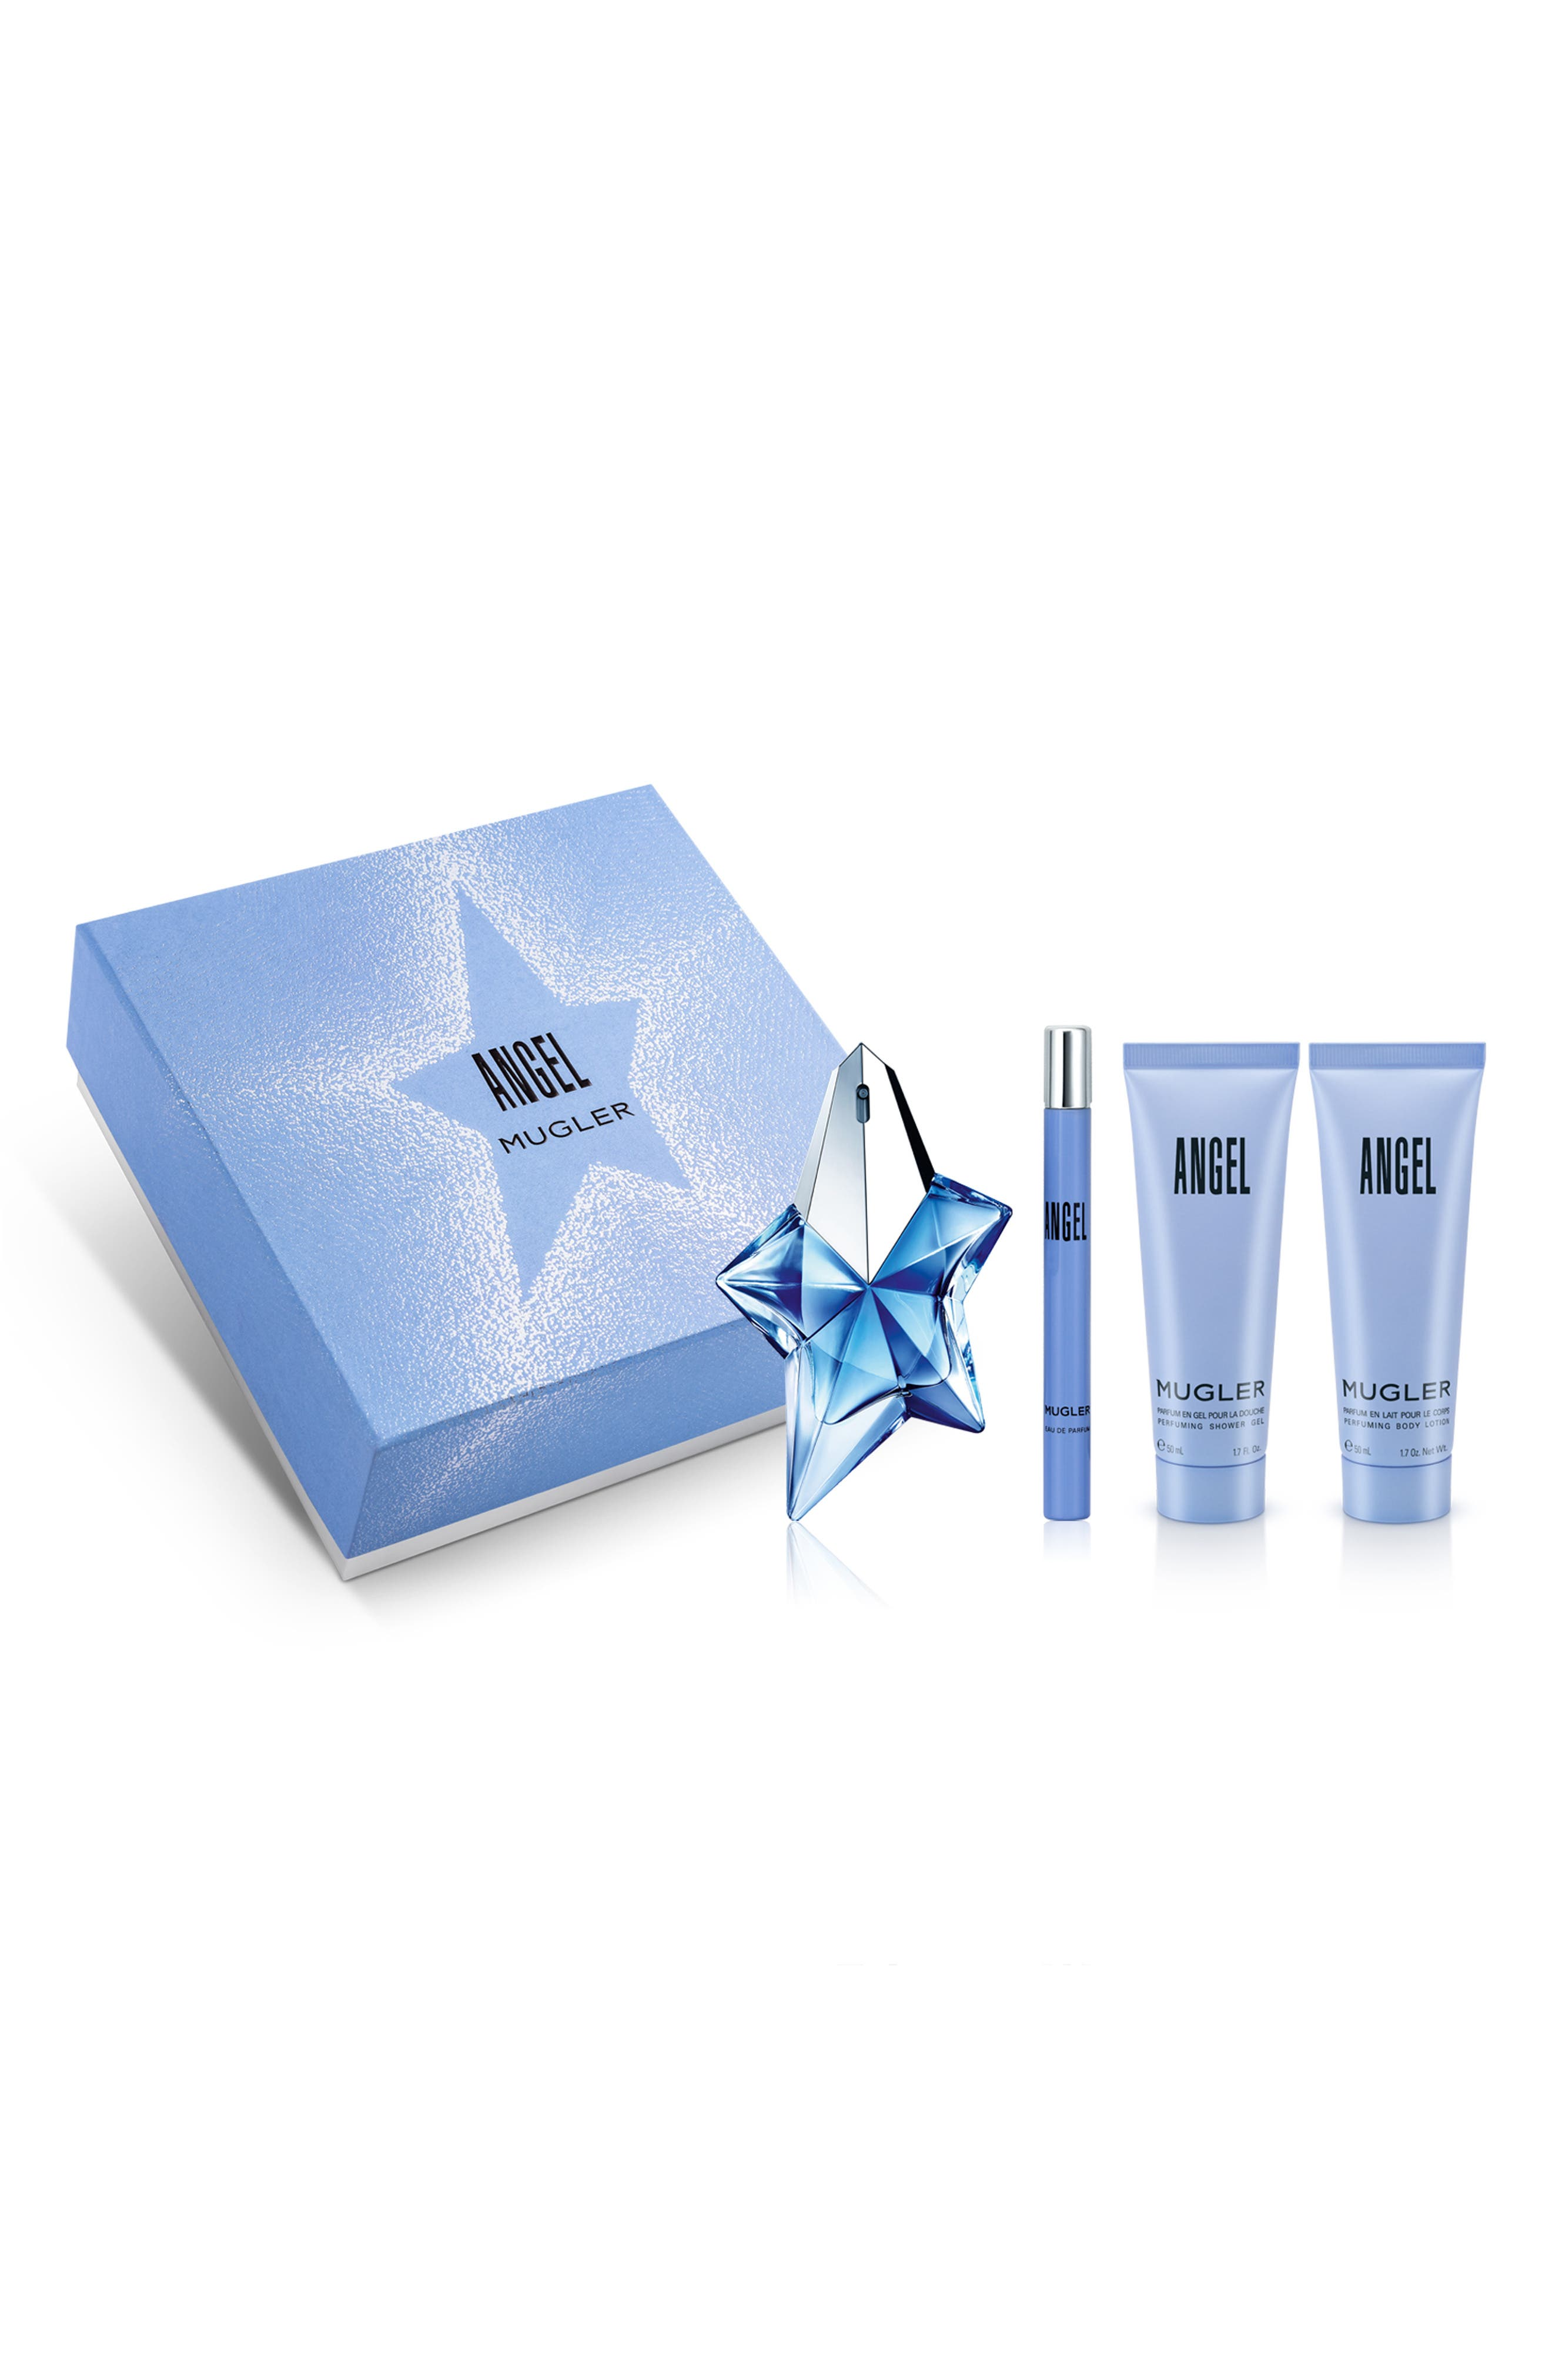 Angel by Mugler Four Piece Fragrance Set,                             Main thumbnail 1, color,                             NO COLOR